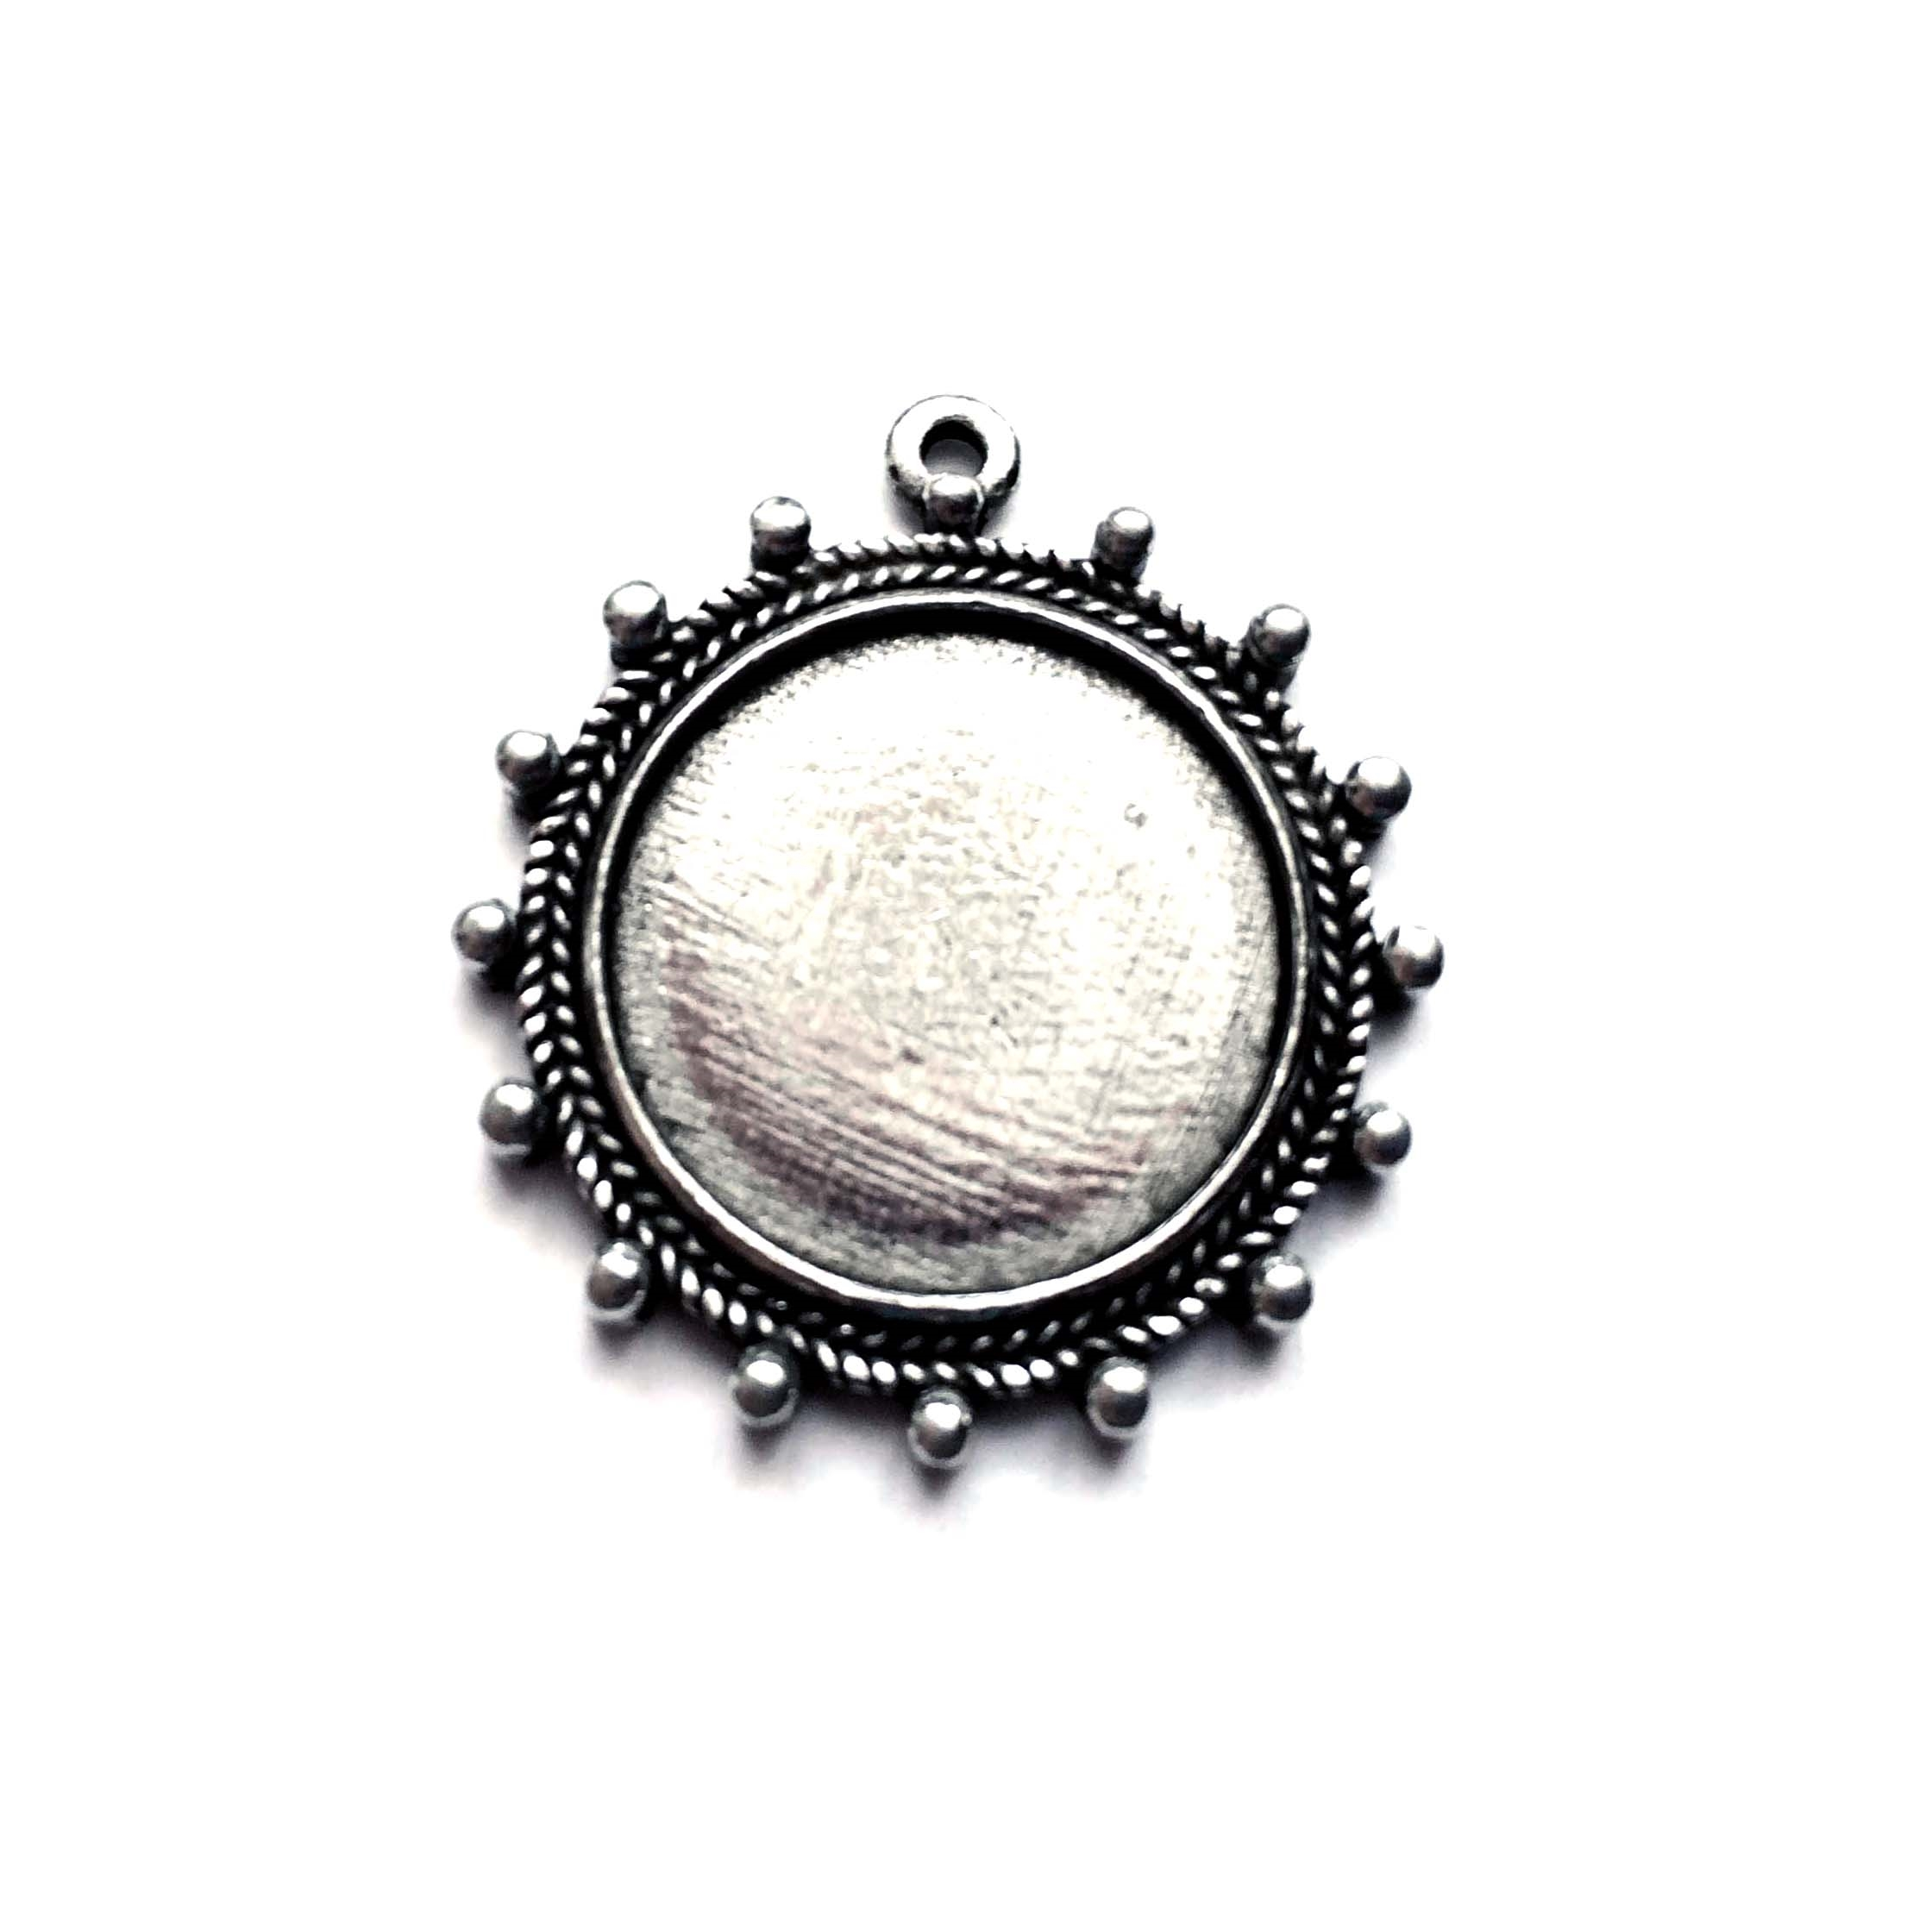 old silver, cameo pendant, 09751, lead free pewter, B'sue by 1928, silver plated pewter, antique, vintage jewelry parts, pewter jewelry parts, nickel free finish, made in the USA, 1928 Company, designer jewelry, B'sue Boutiques